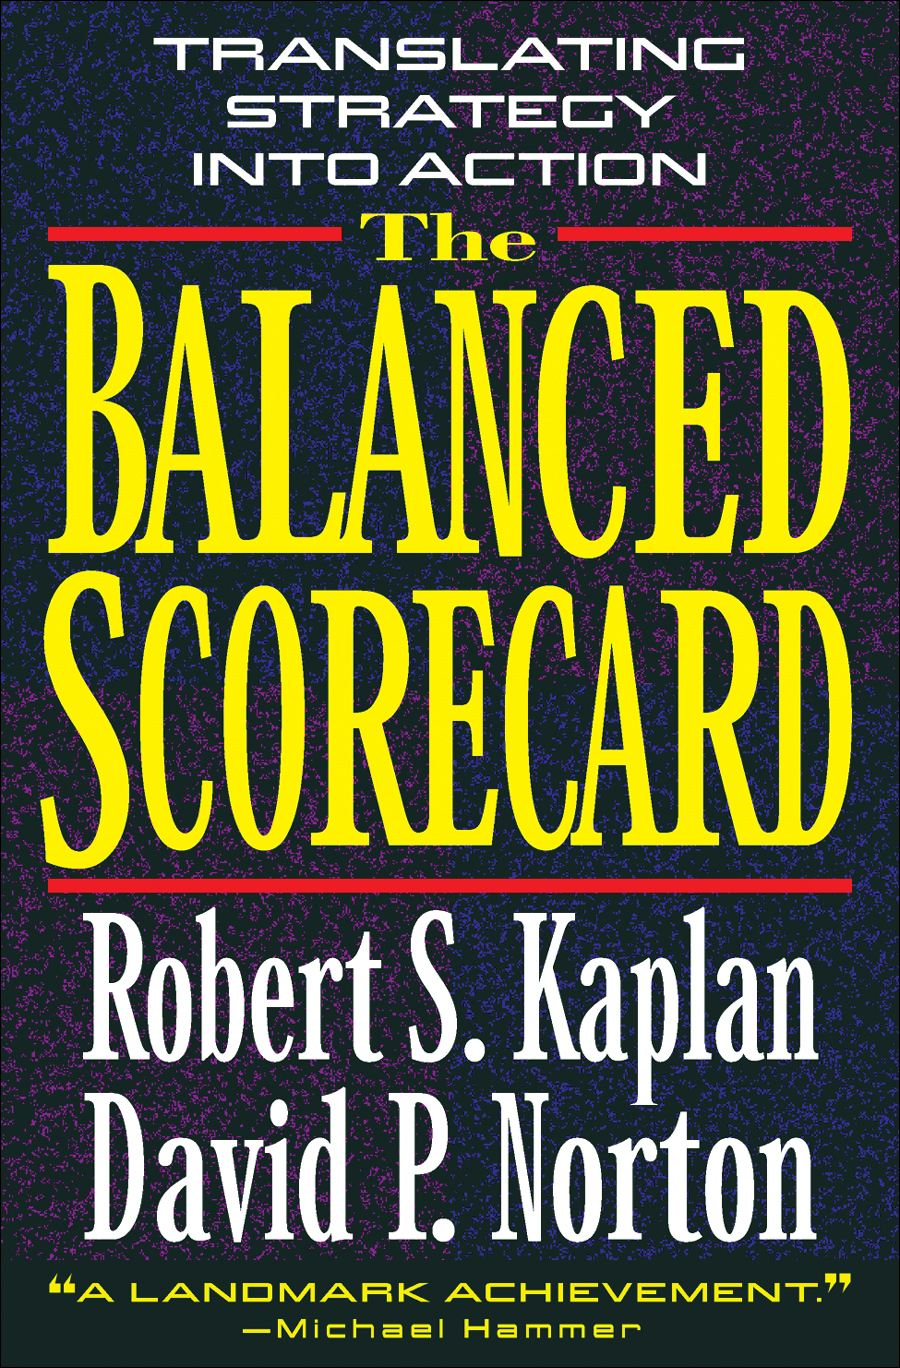 The Balanced Scorecard By: David P. Norton,Robert S. Kaplan